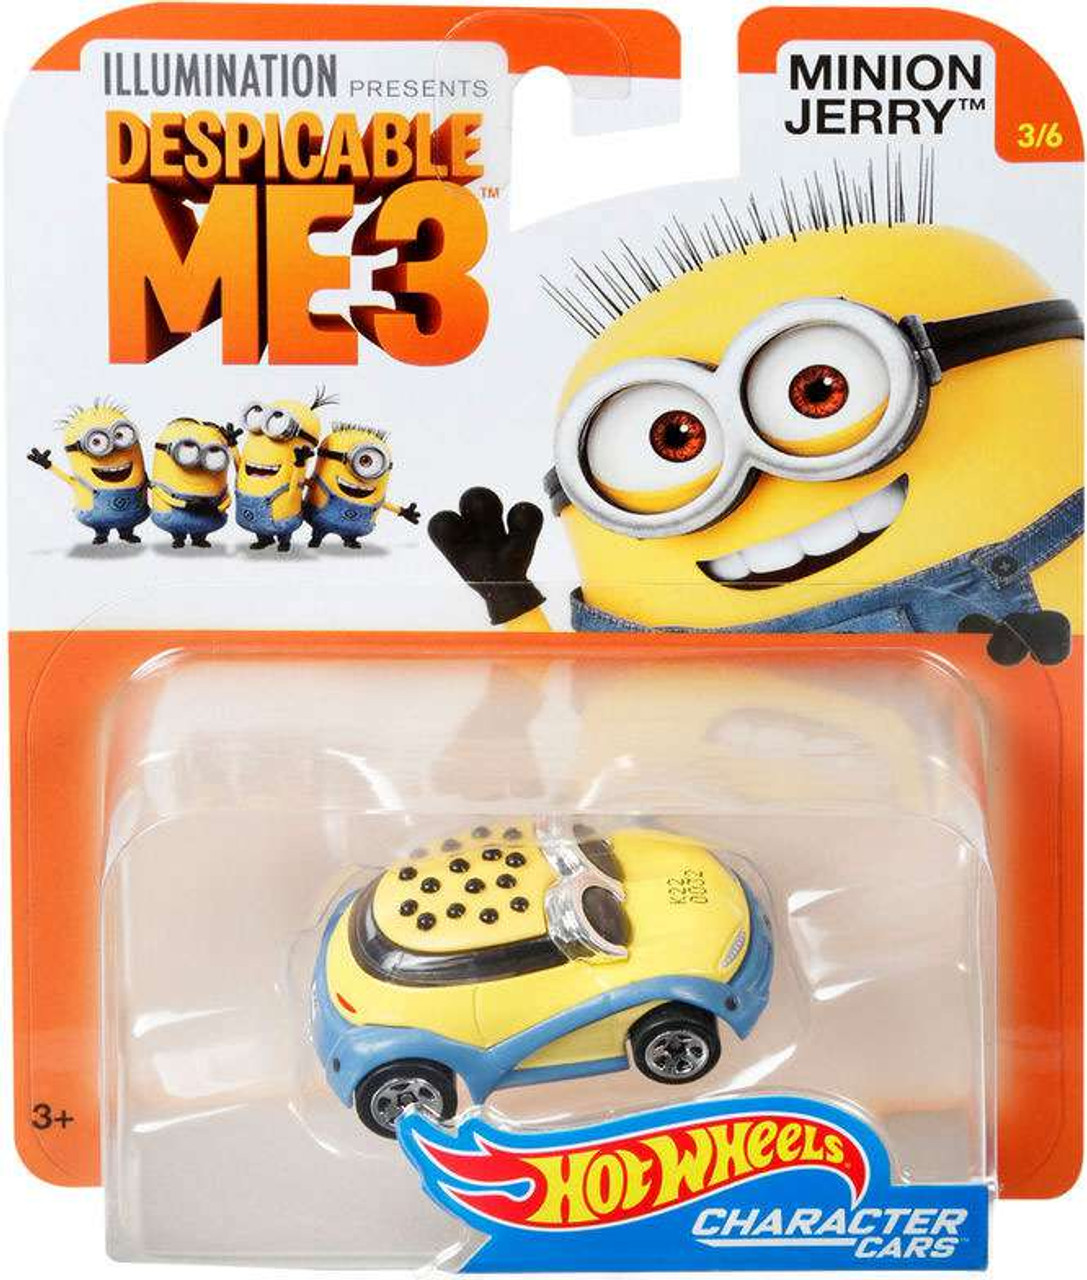 Hot Wheels Despicable Me 3 Minion Jerry 164 Diecast Character Car